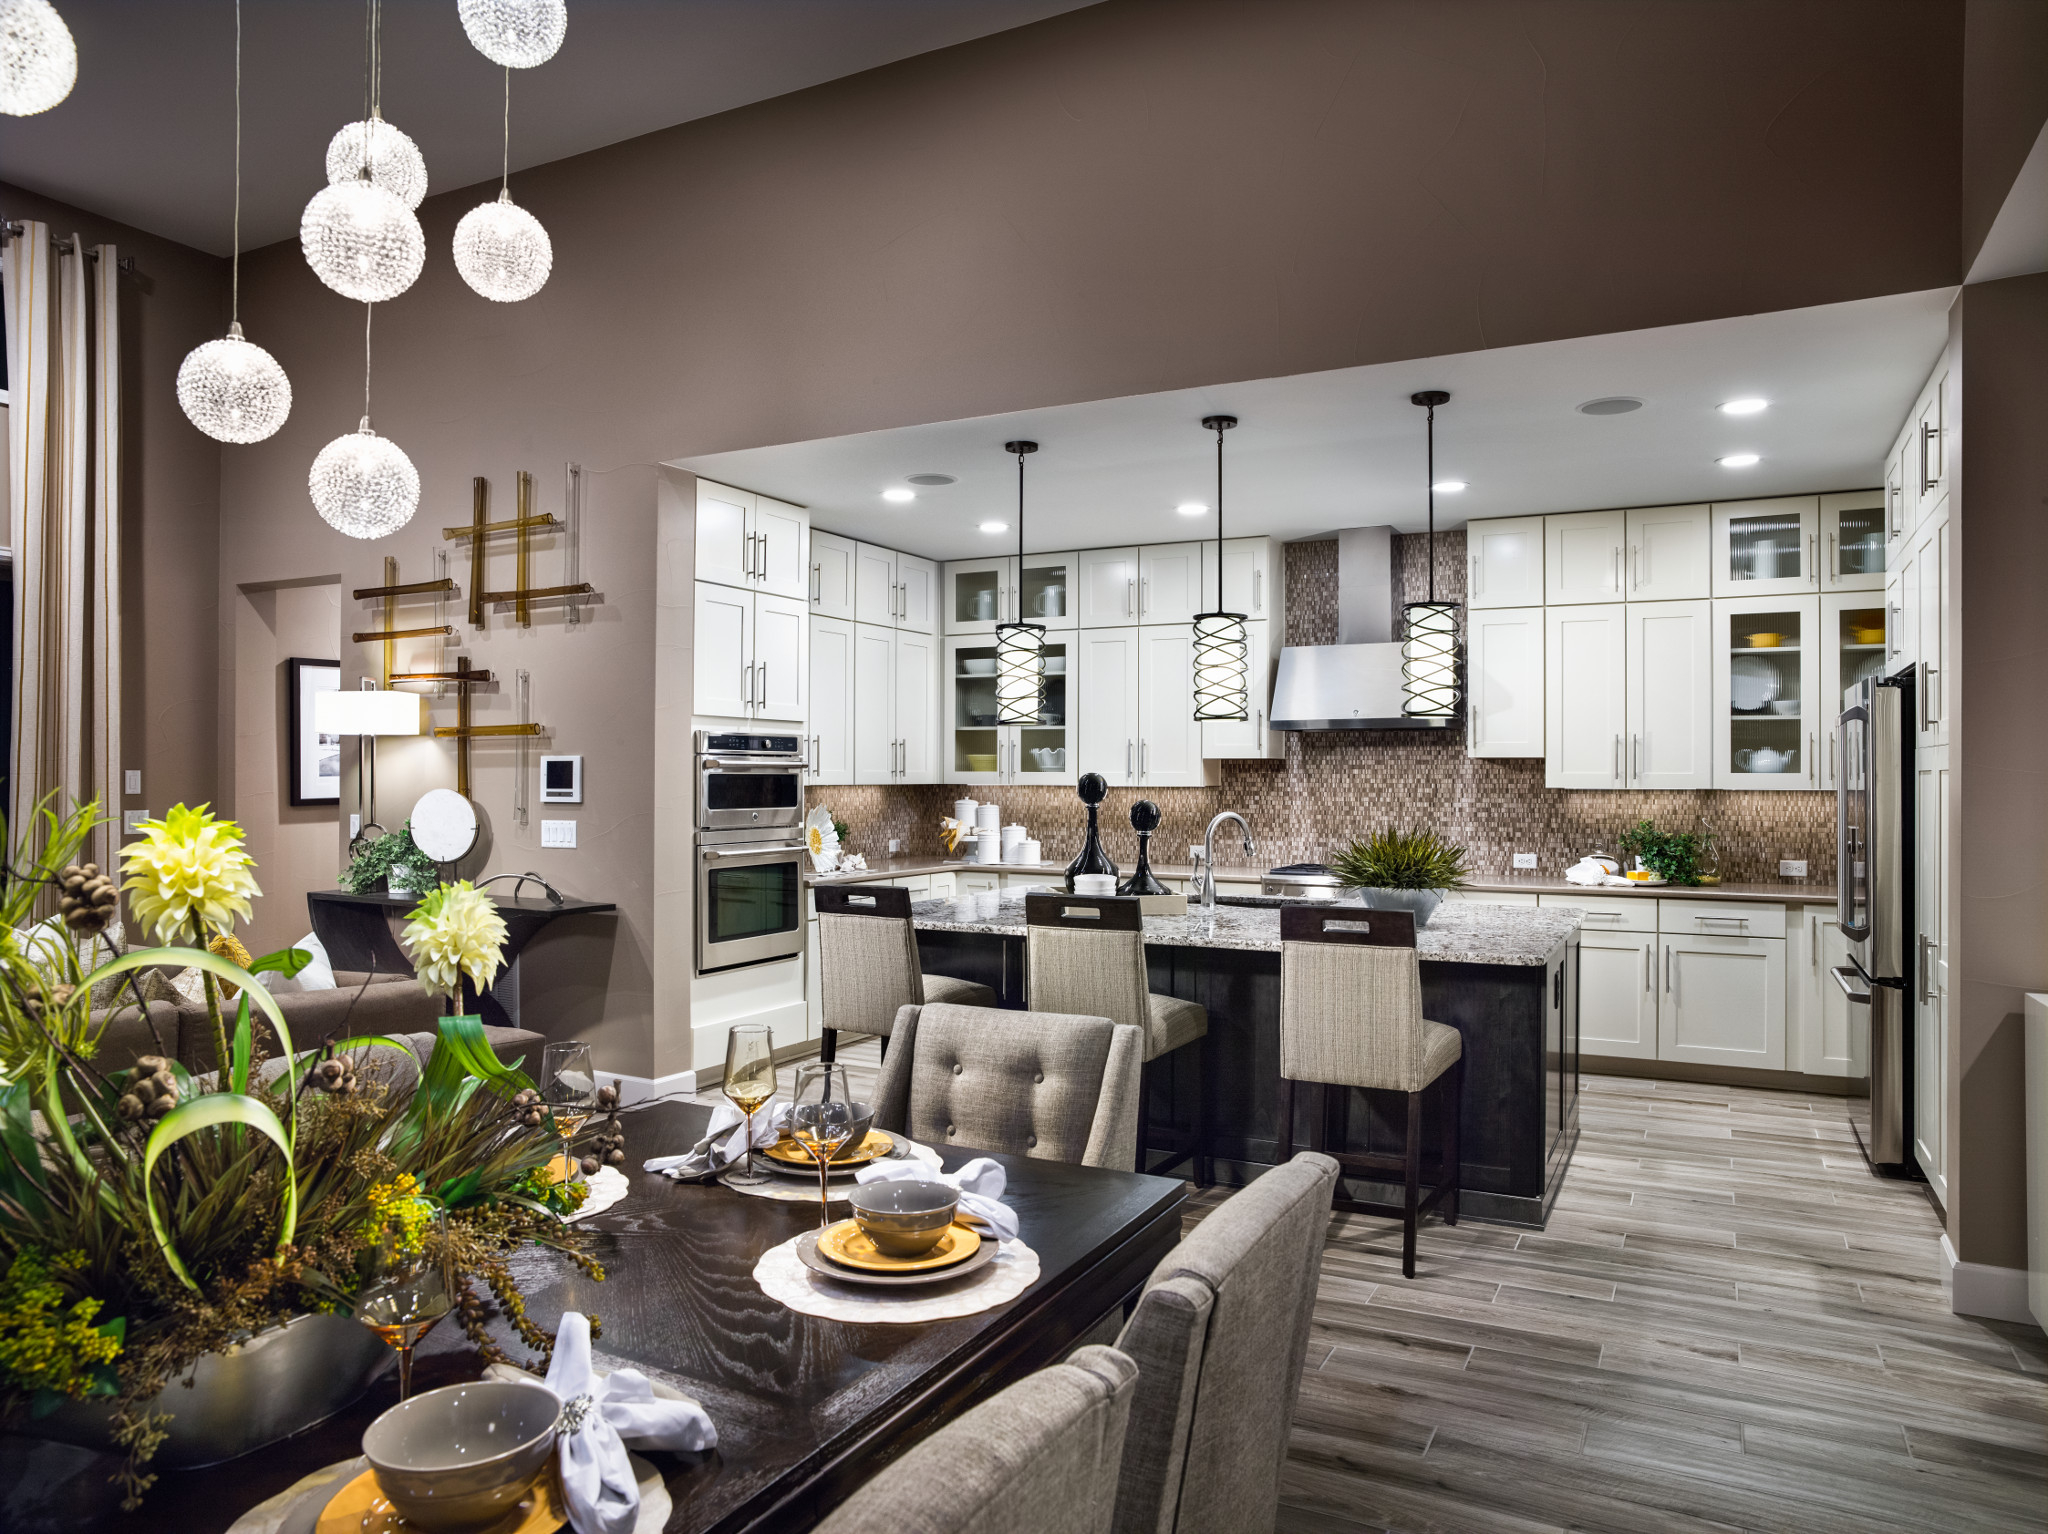 BackCountry Painted Sky Stargazer Kitchen and Dining